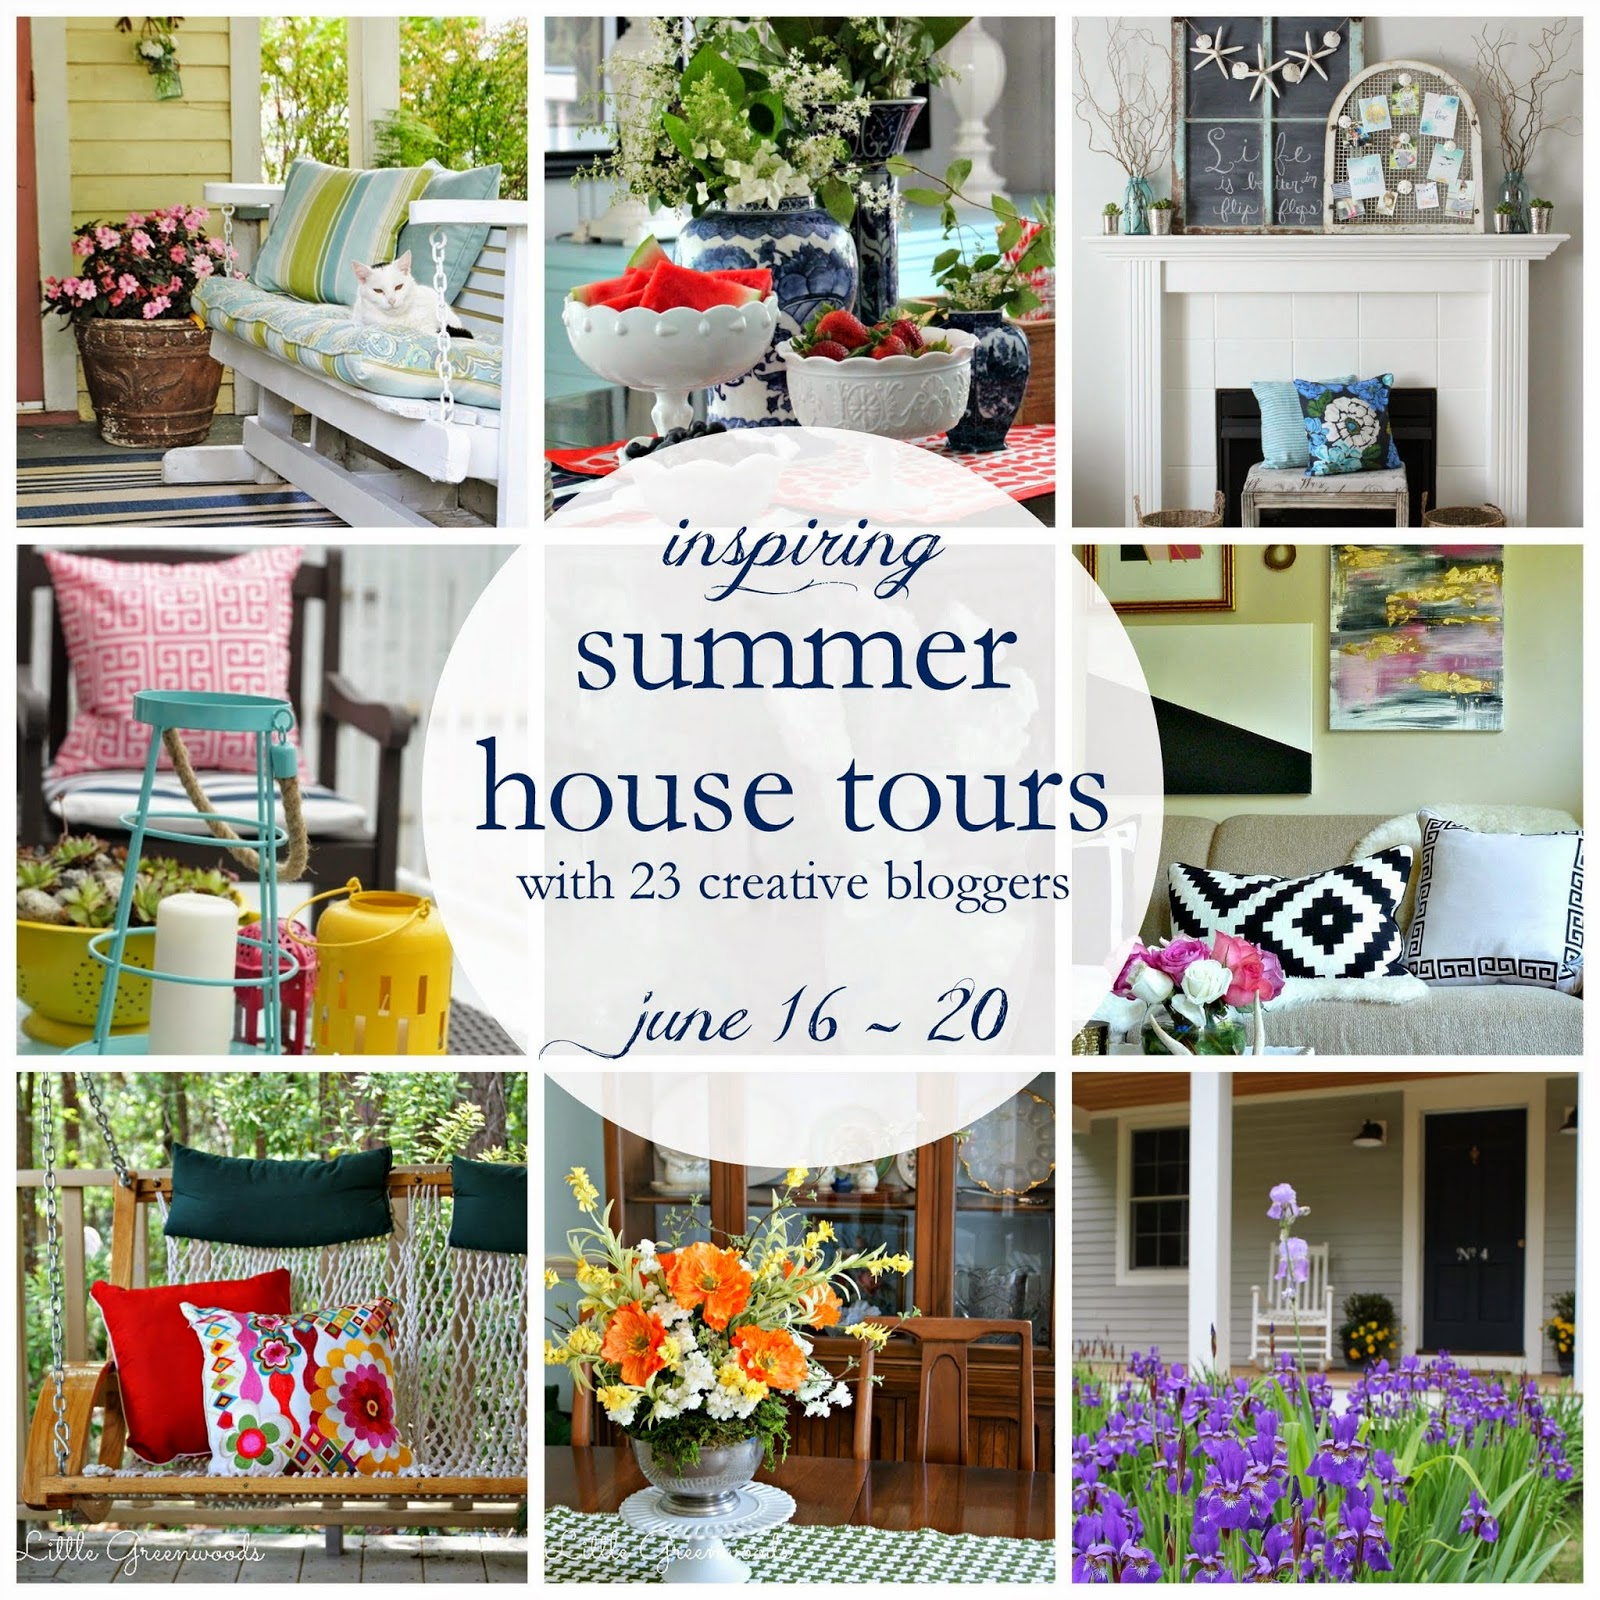 Summer house tour via somuchbetterwithage.com